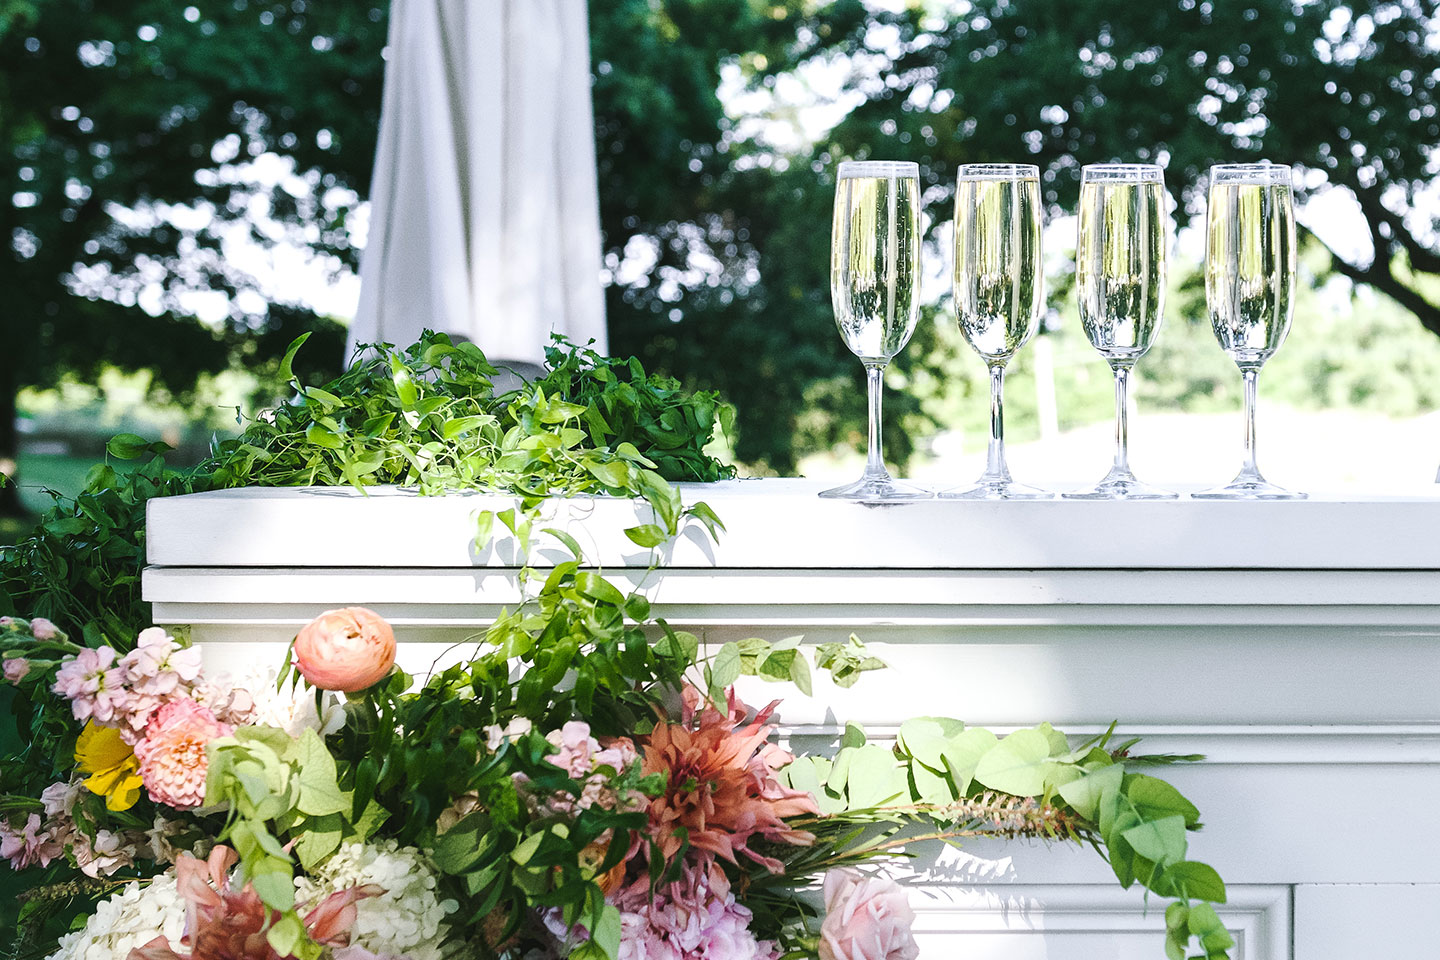 Champagne flutes outdoors